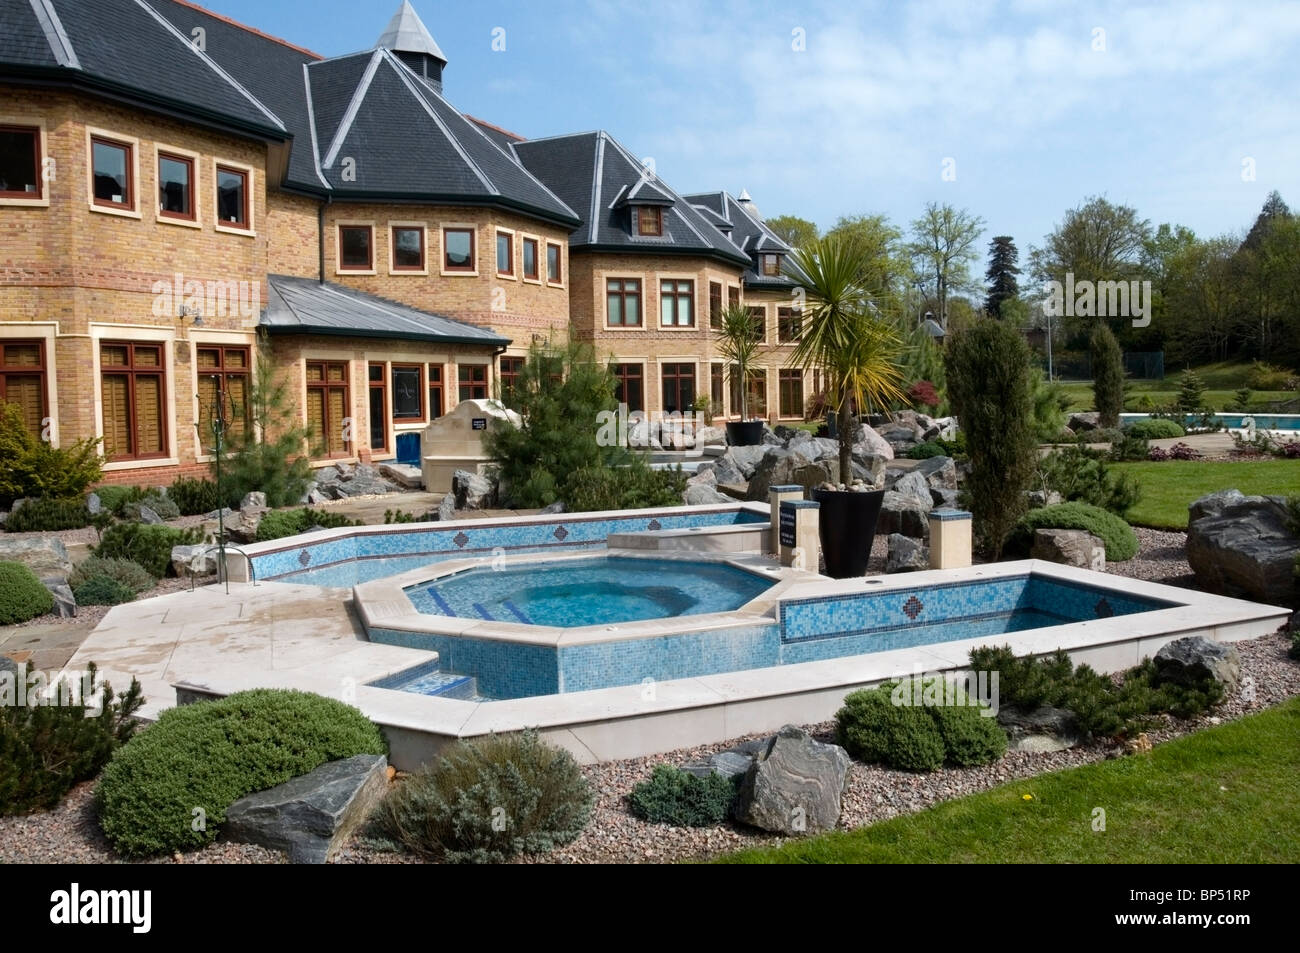 Luxury Park pennyhill park luxury hotel spa exterior grounds architecture